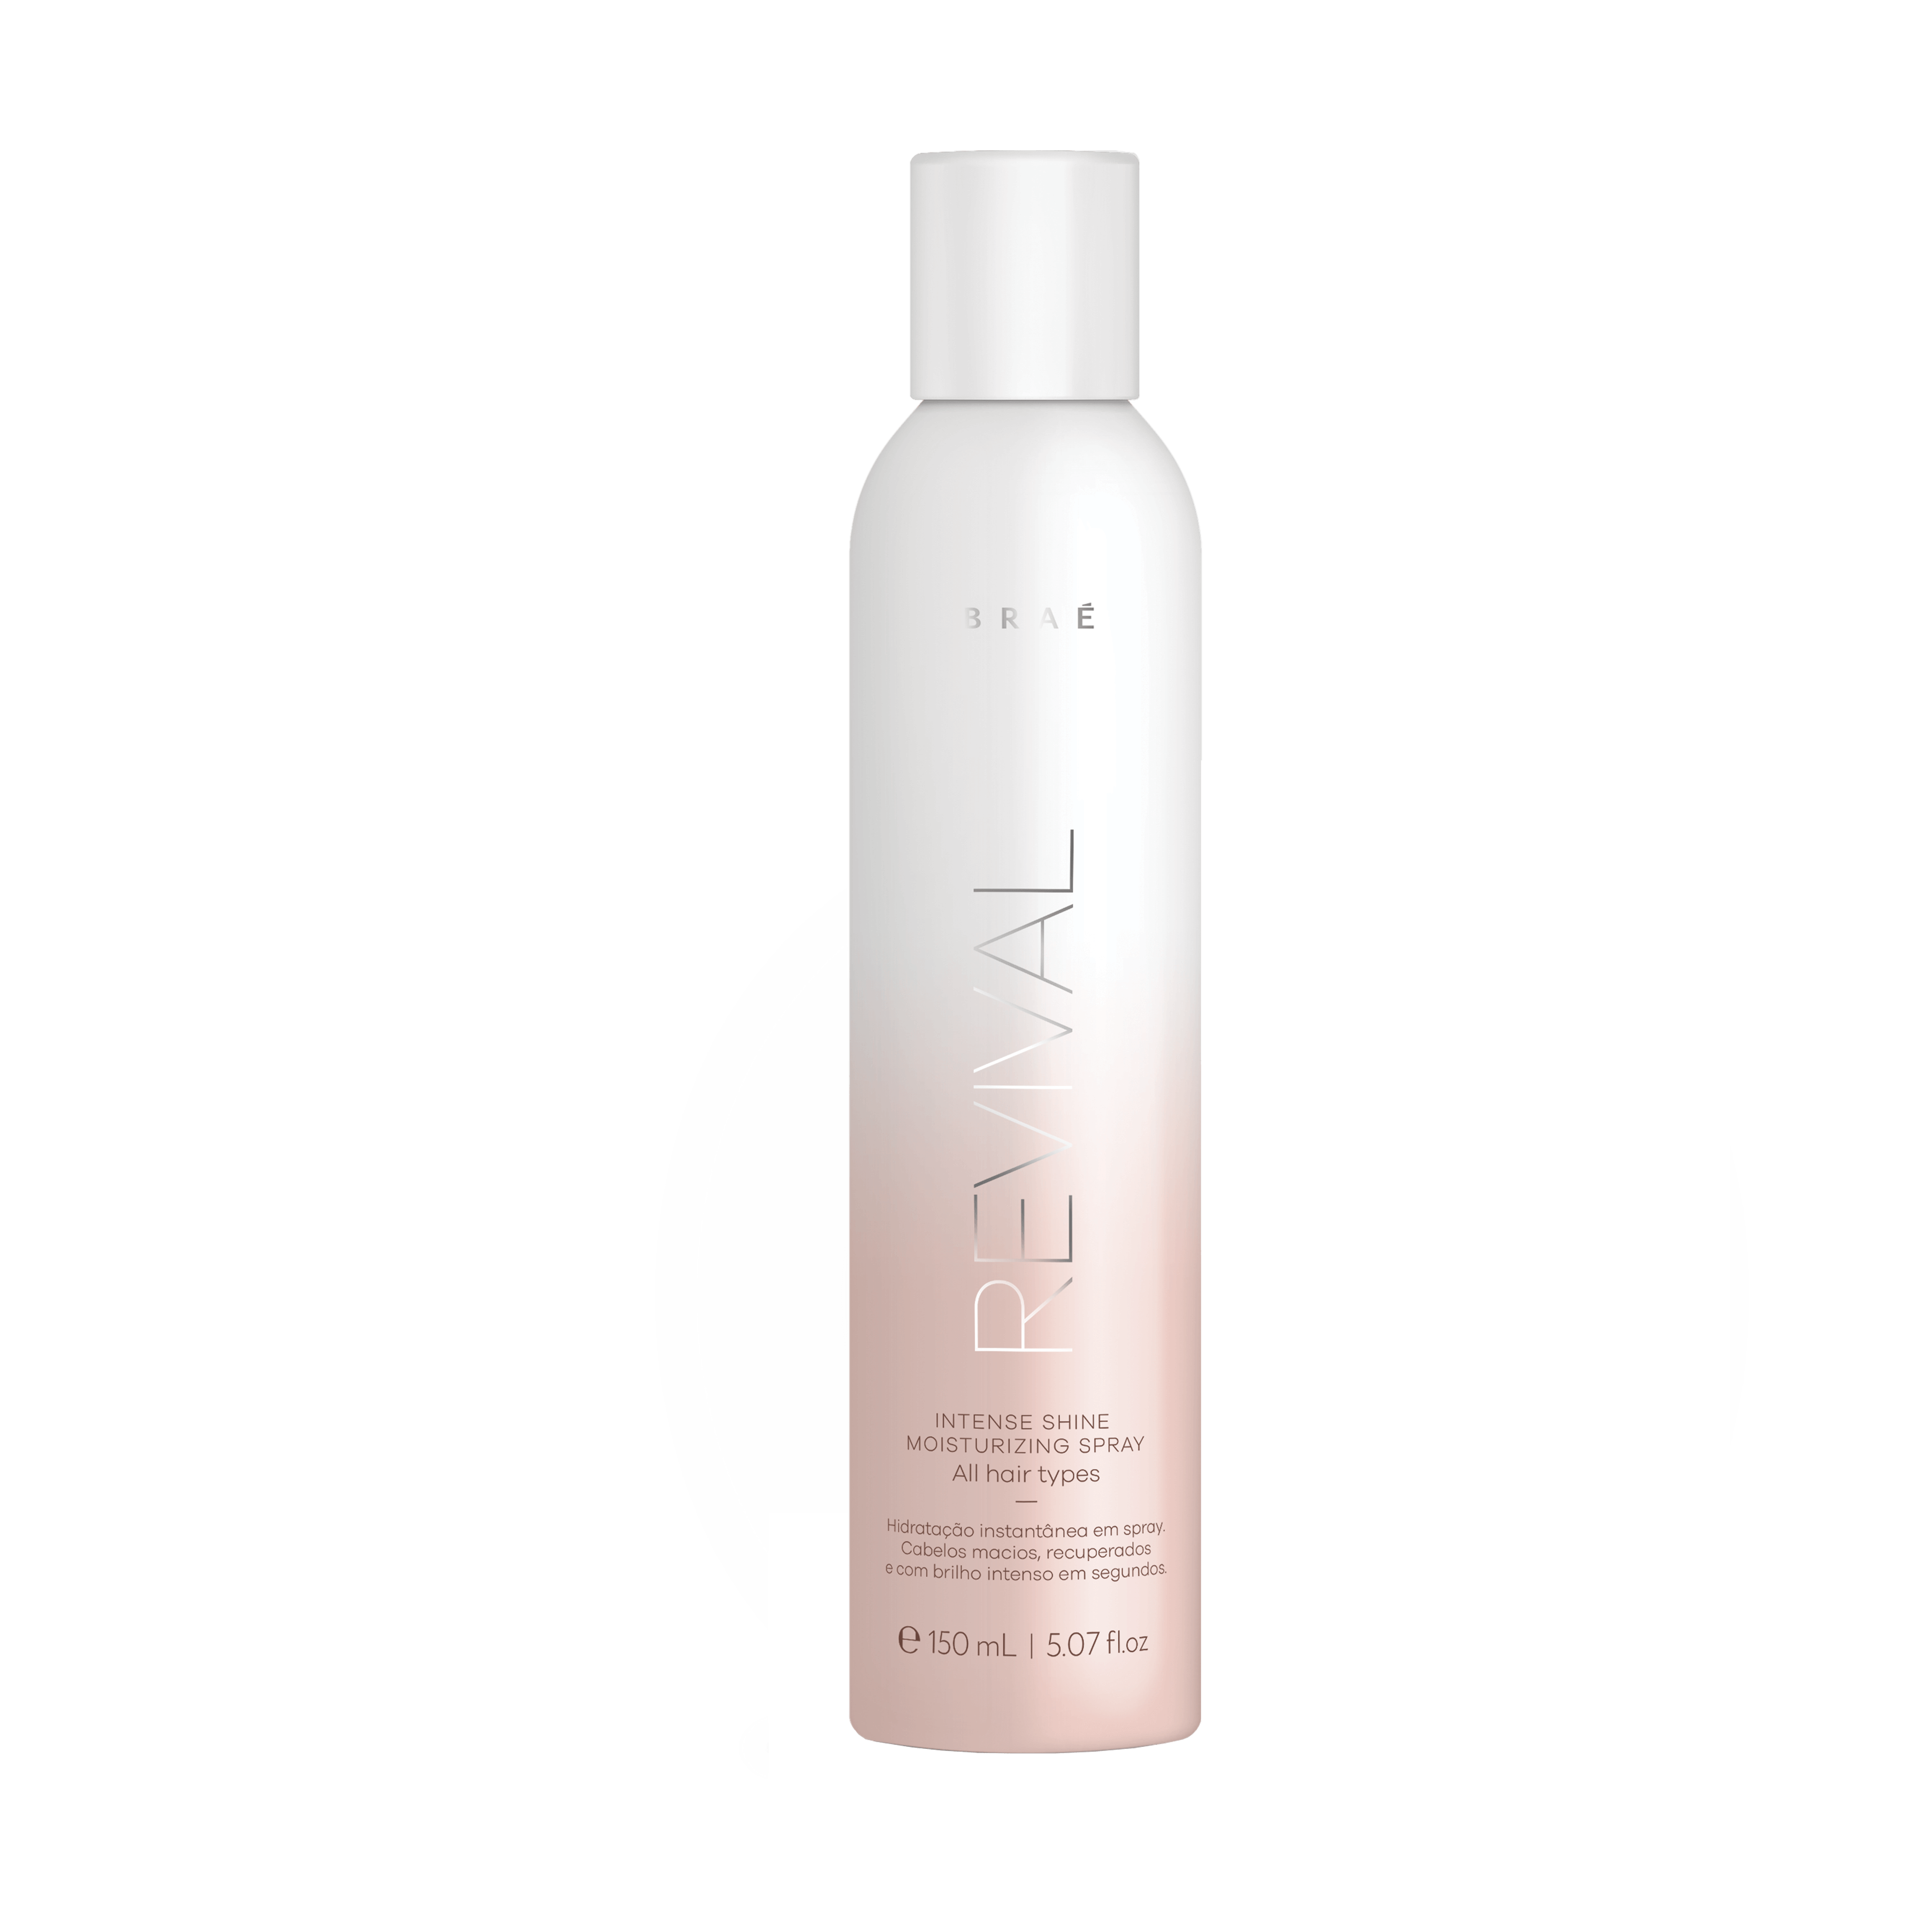 Revival Moisturizing Dry Spray 150ml